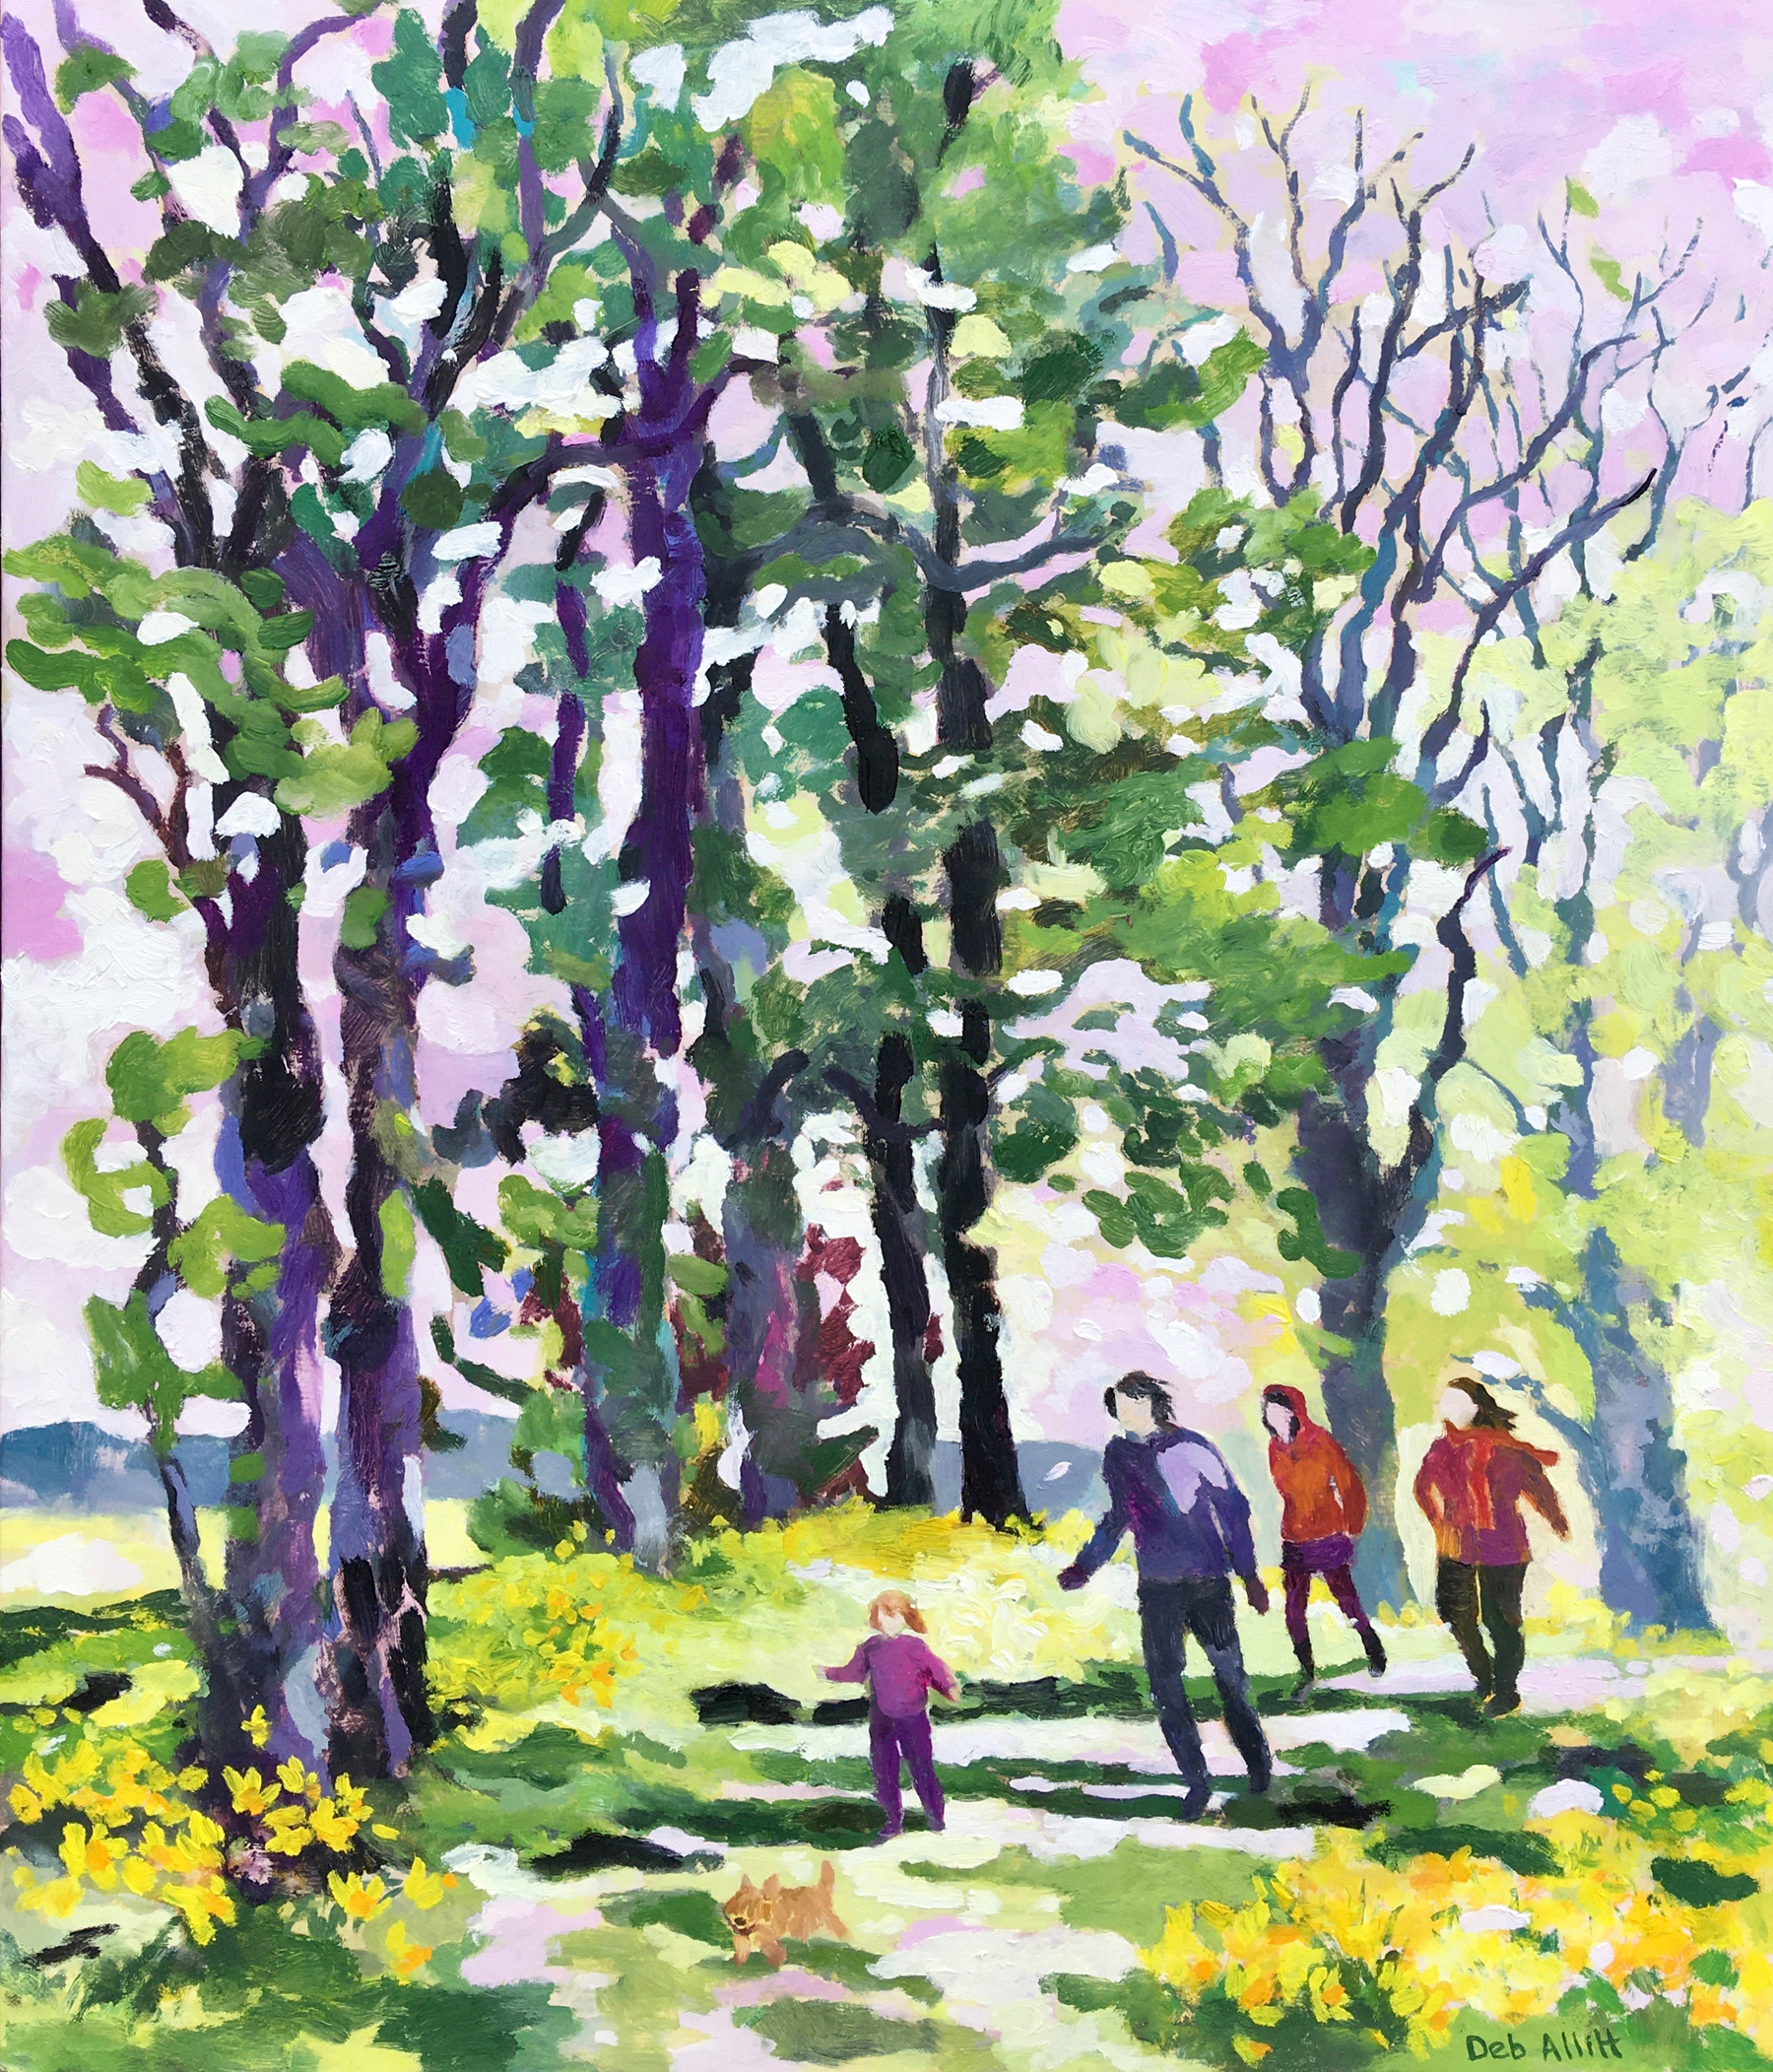 Daffodil Walk in the Woods. Oil on canvas. 60 x 70 cm